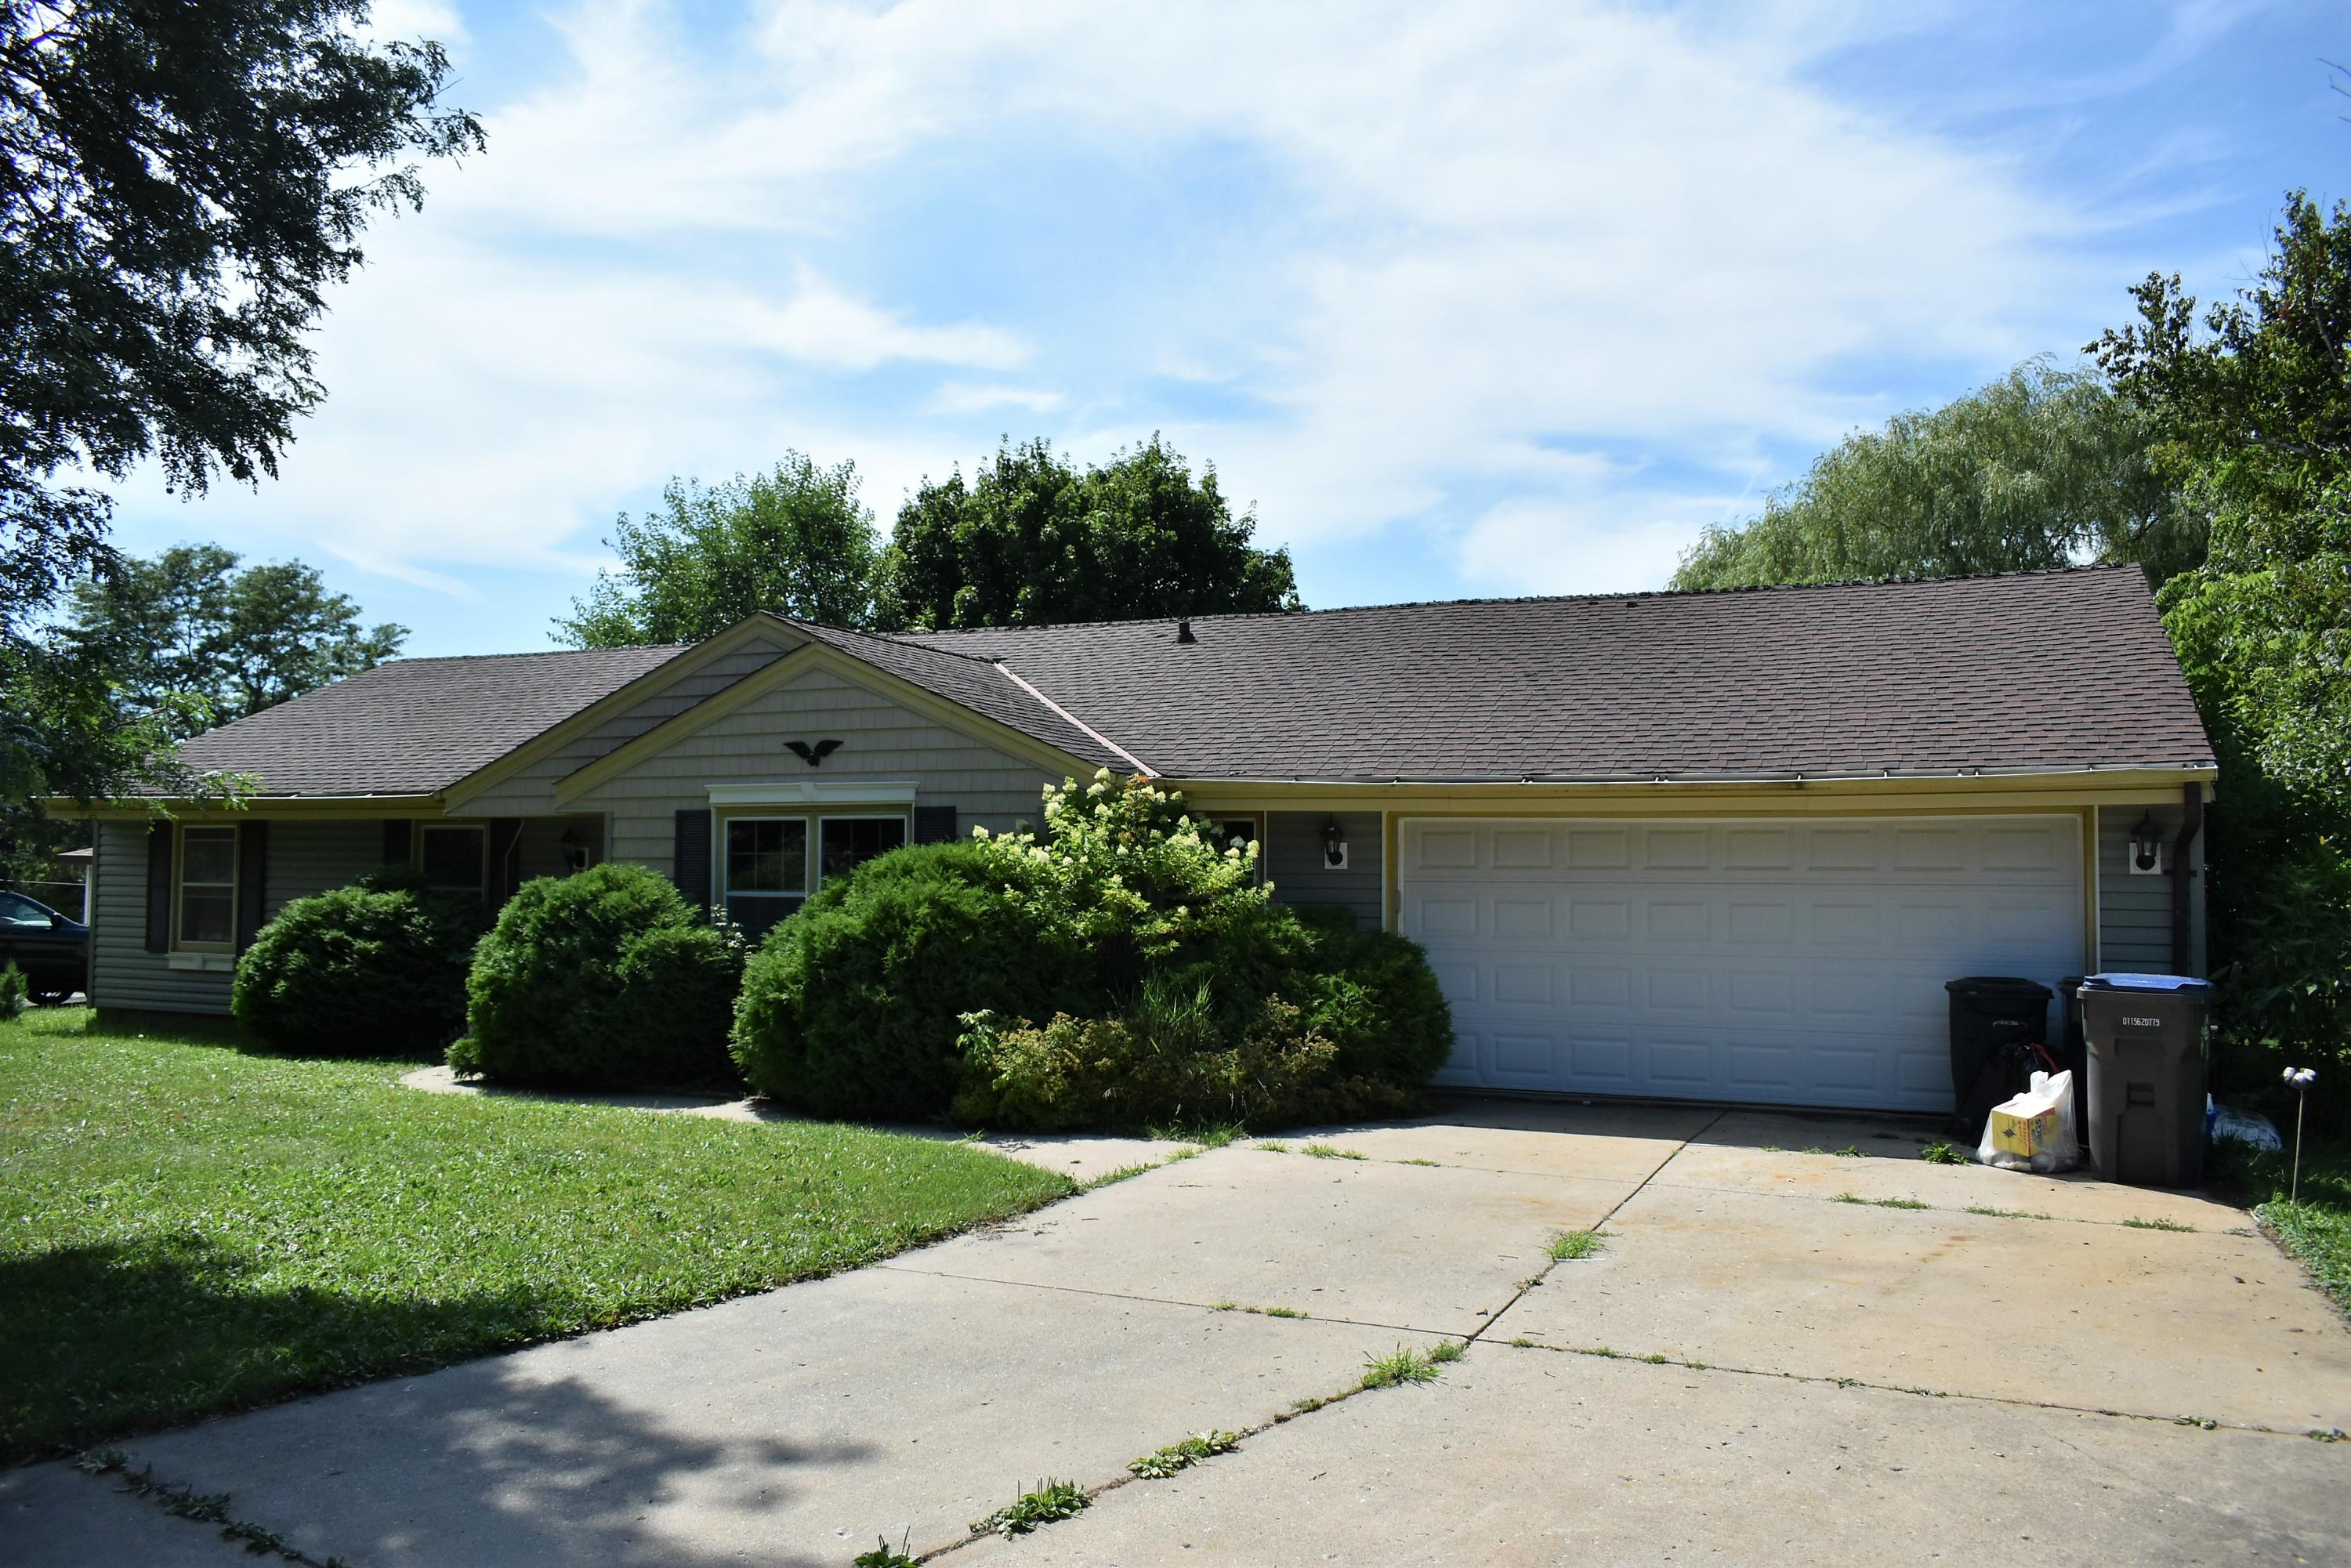 423 Bruce Ct, Hartland, Wisconsin 53029, 3 Bedrooms Bedrooms, 6 Rooms Rooms,1 BathroomBathrooms,Single-Family,For Sale,Bruce Ct,1700804